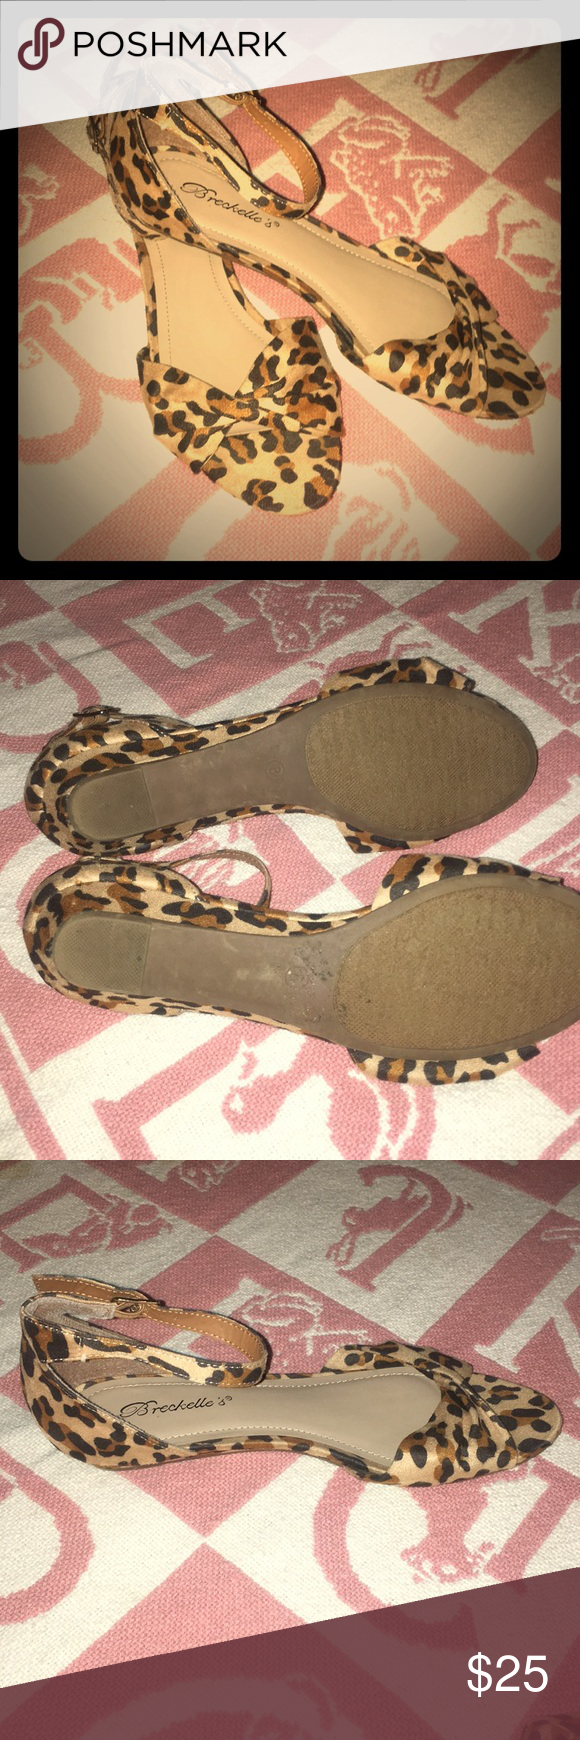 Breckelle's Leopard shoes! Super cute leopard sandals with ankle strap. Worn once. Good condition. Size 8 Breckelles Shoes Sandals #leopardshoesoutfit